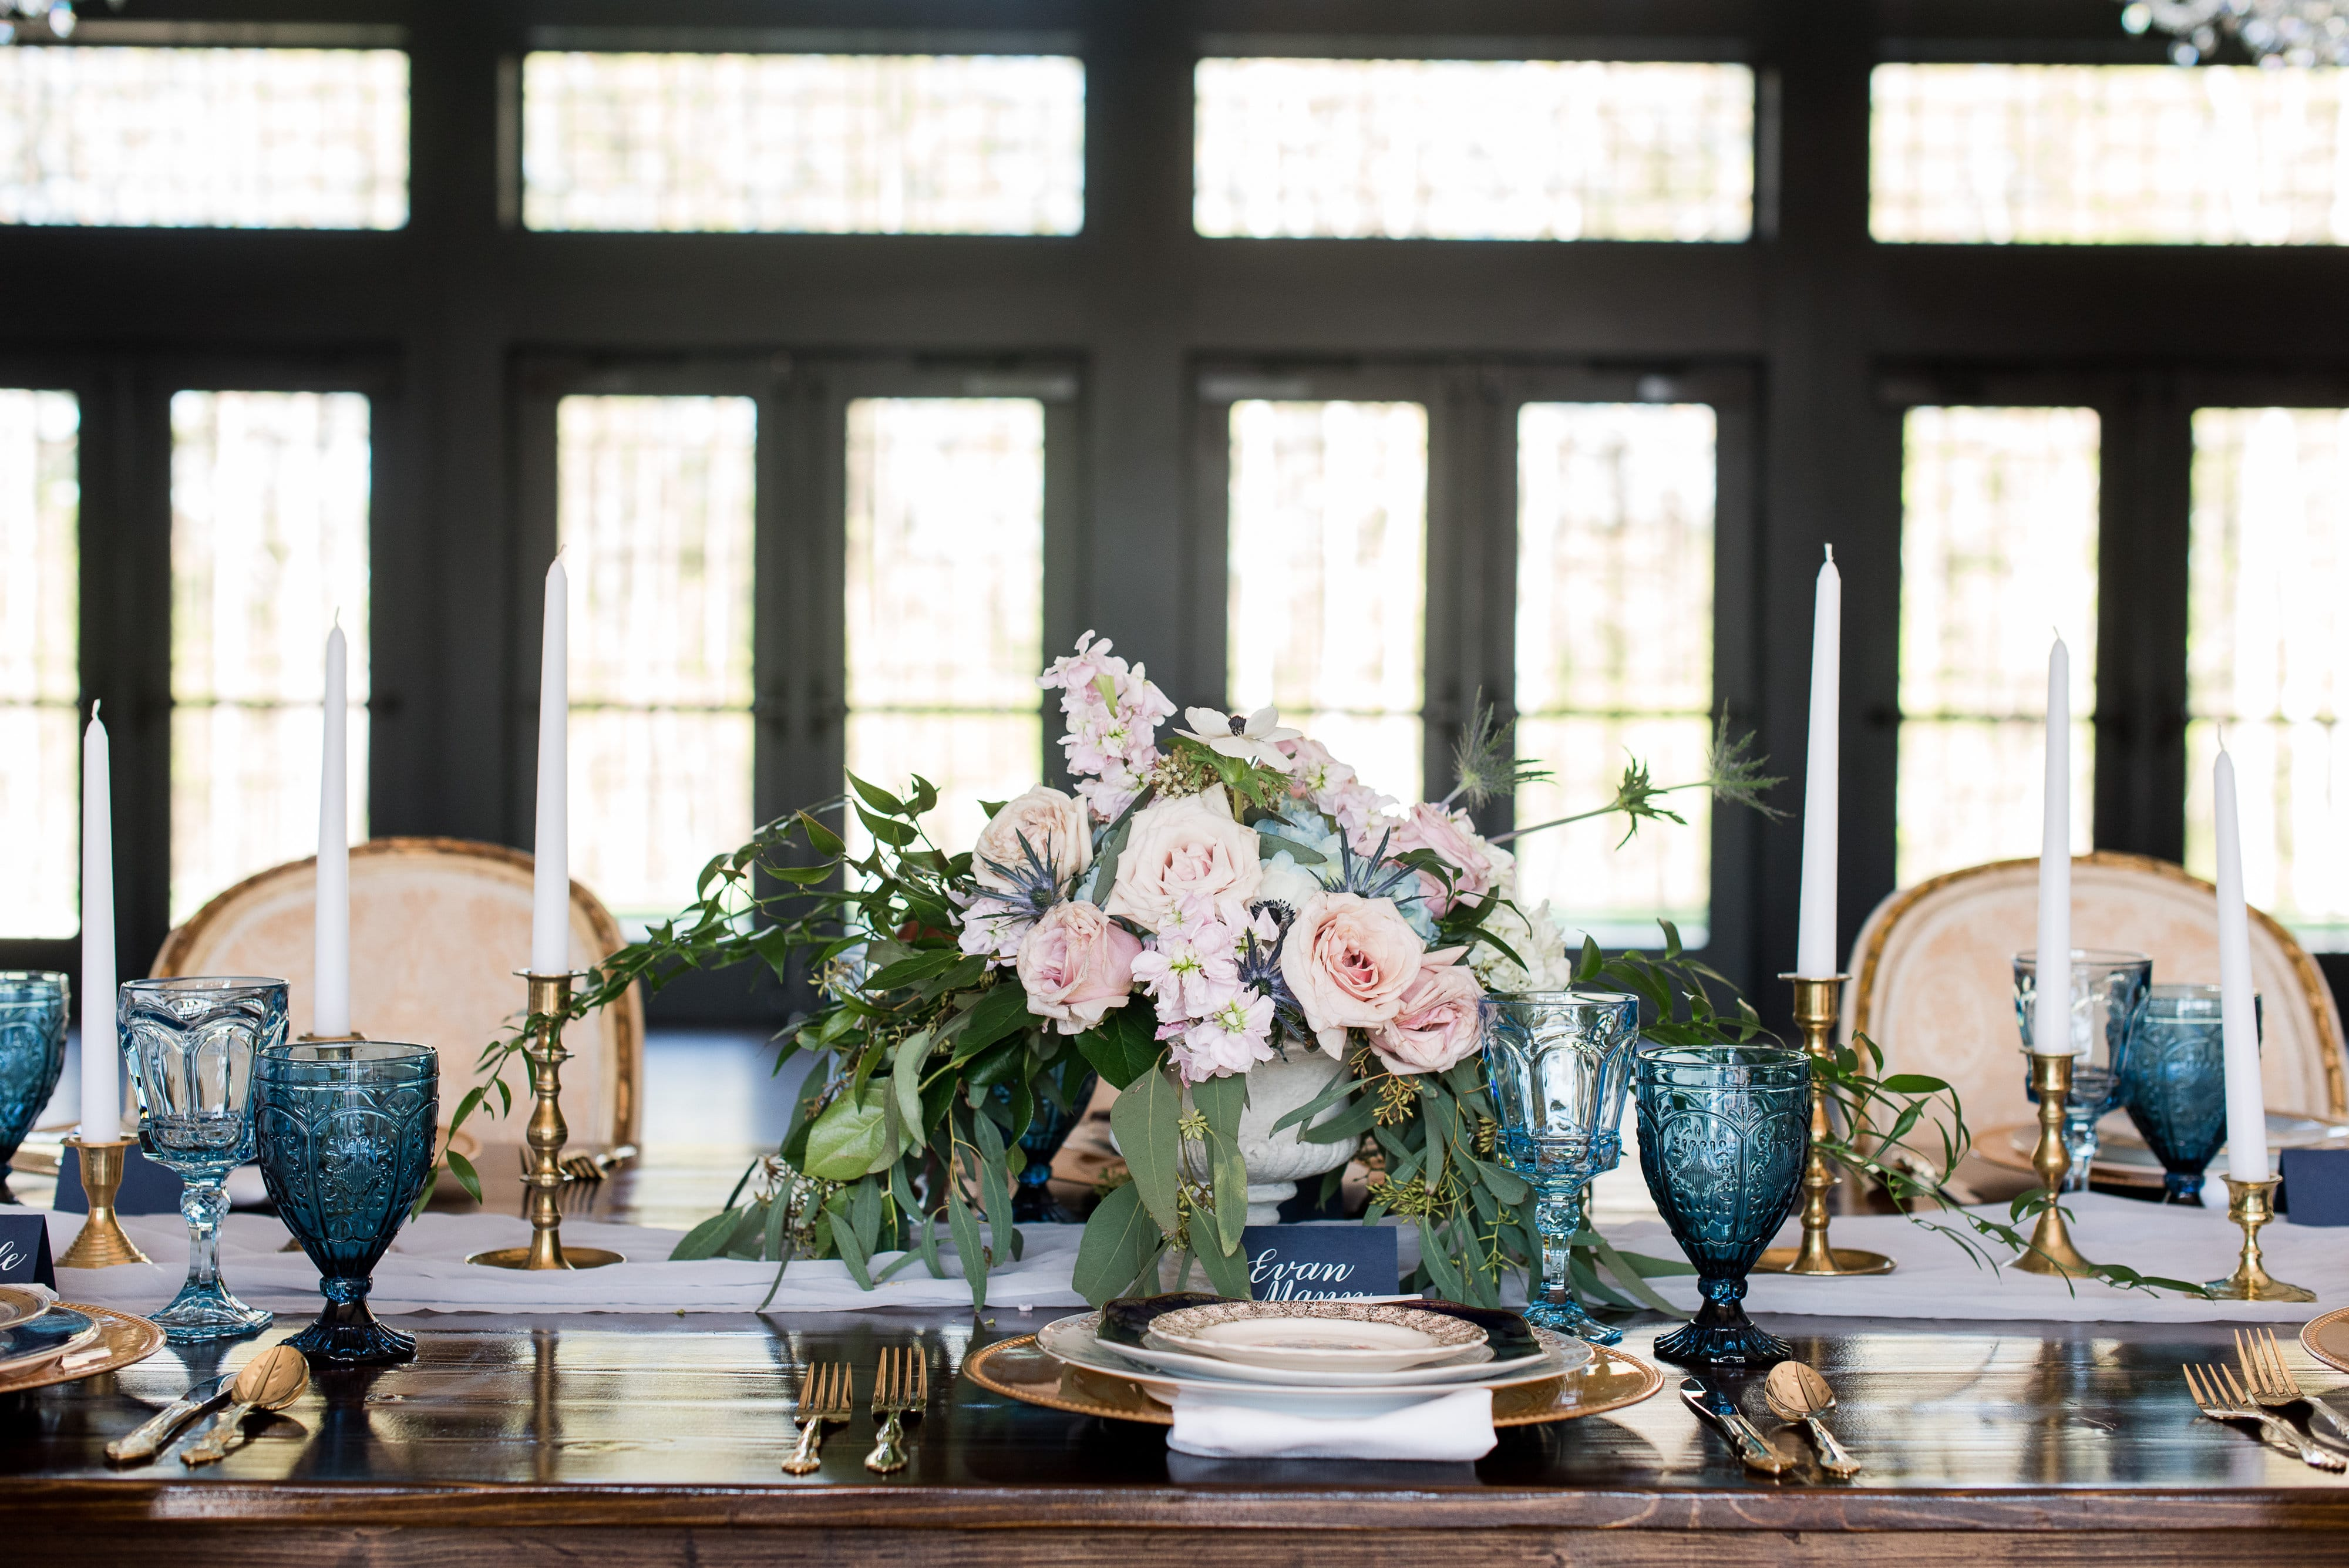 Amazing french blue table setting with pink roses and blue accents created by Magnificent Moments Weddings